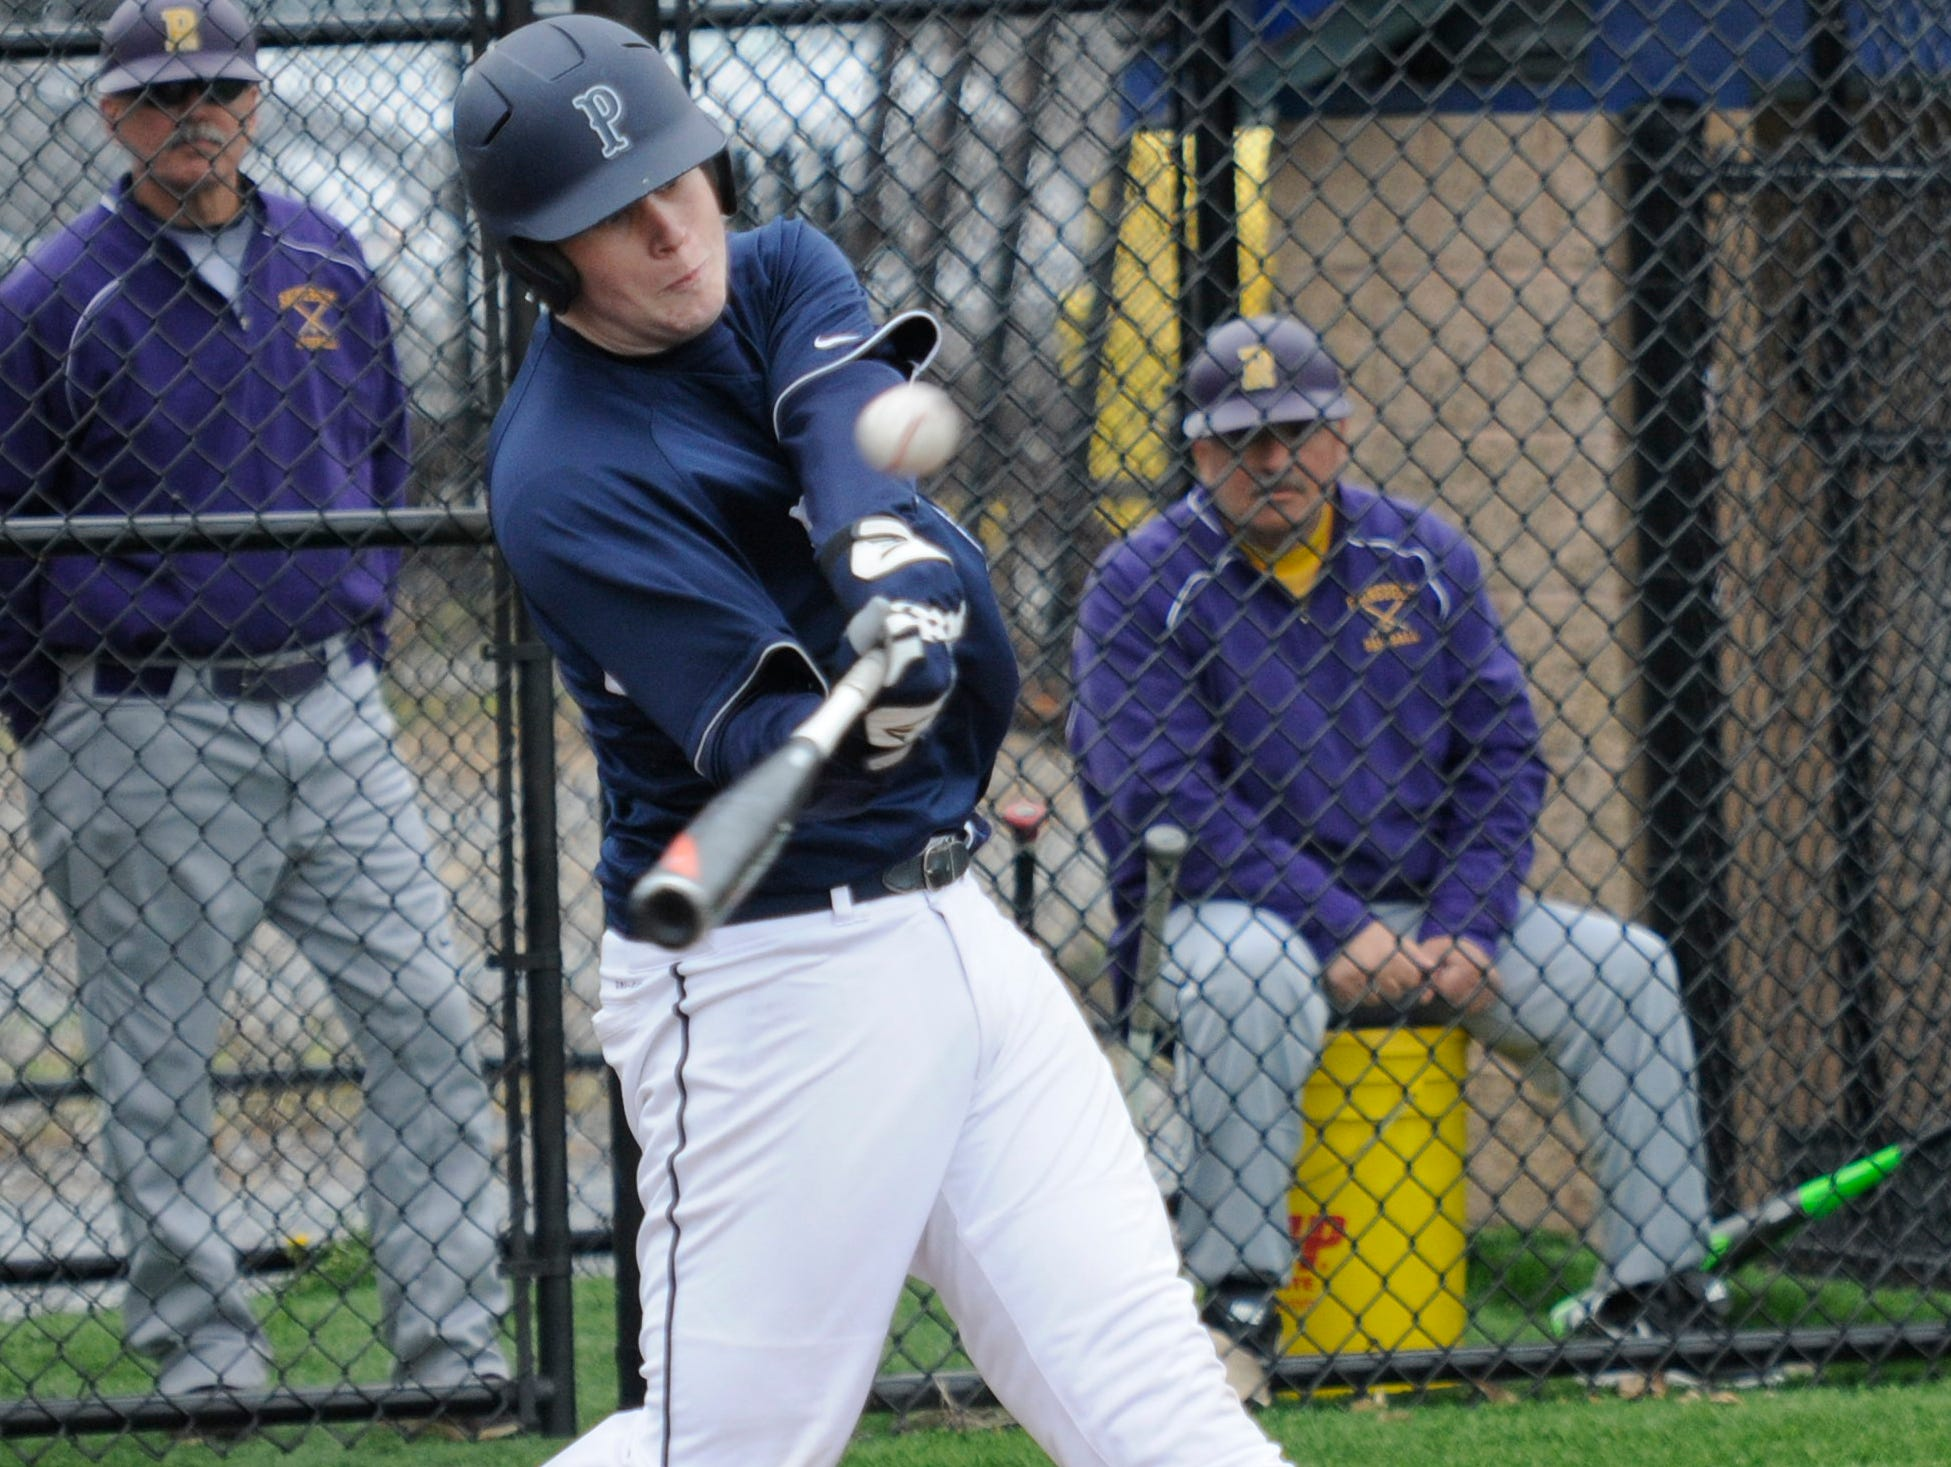 Poughkeepsie's Cullen O'Shea hits a grand slam home run in the sixth inning of Saturday's game versus Rhinebeck at Poughkeepsie High School.